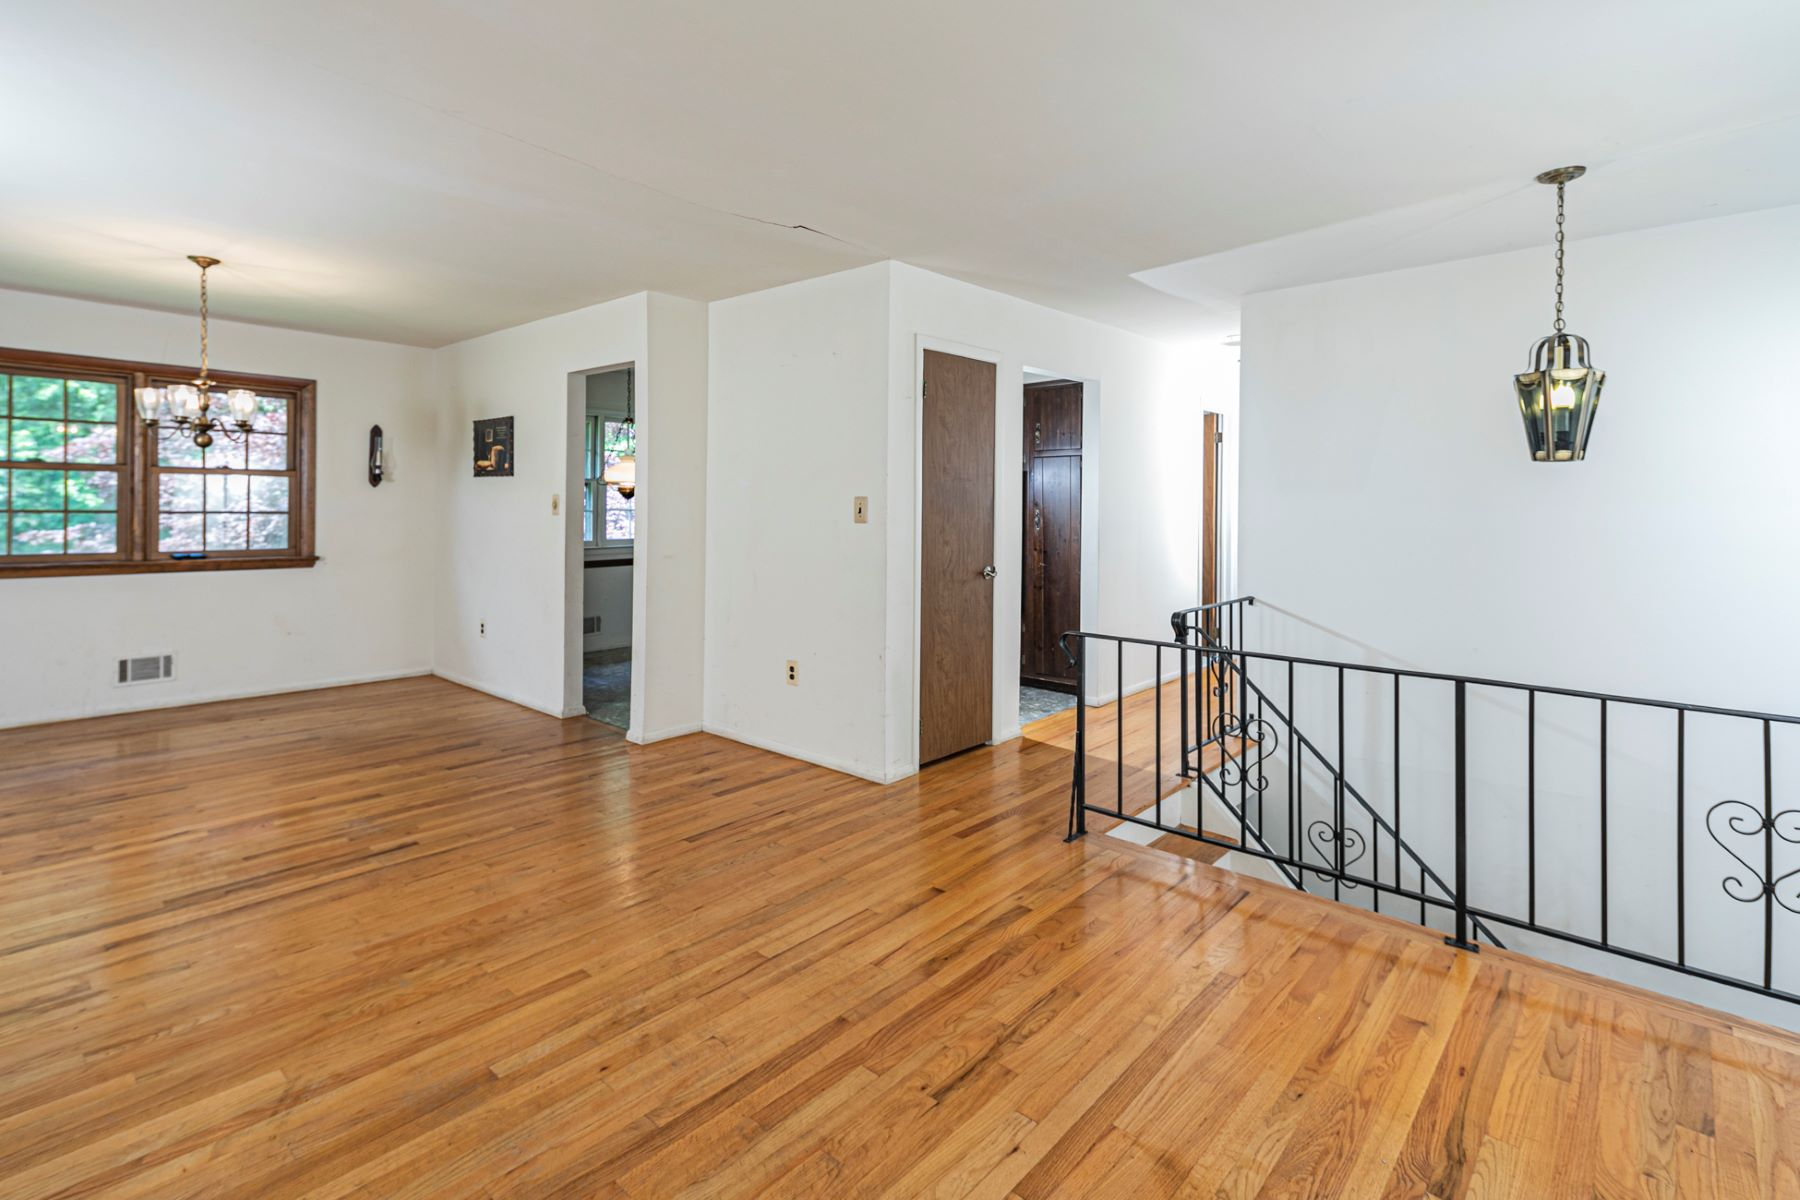 Additional photo for property listing at Ready for Your Magic Touches! 8 Scott Drive, Hillsborough, New Jersey 08844 United States